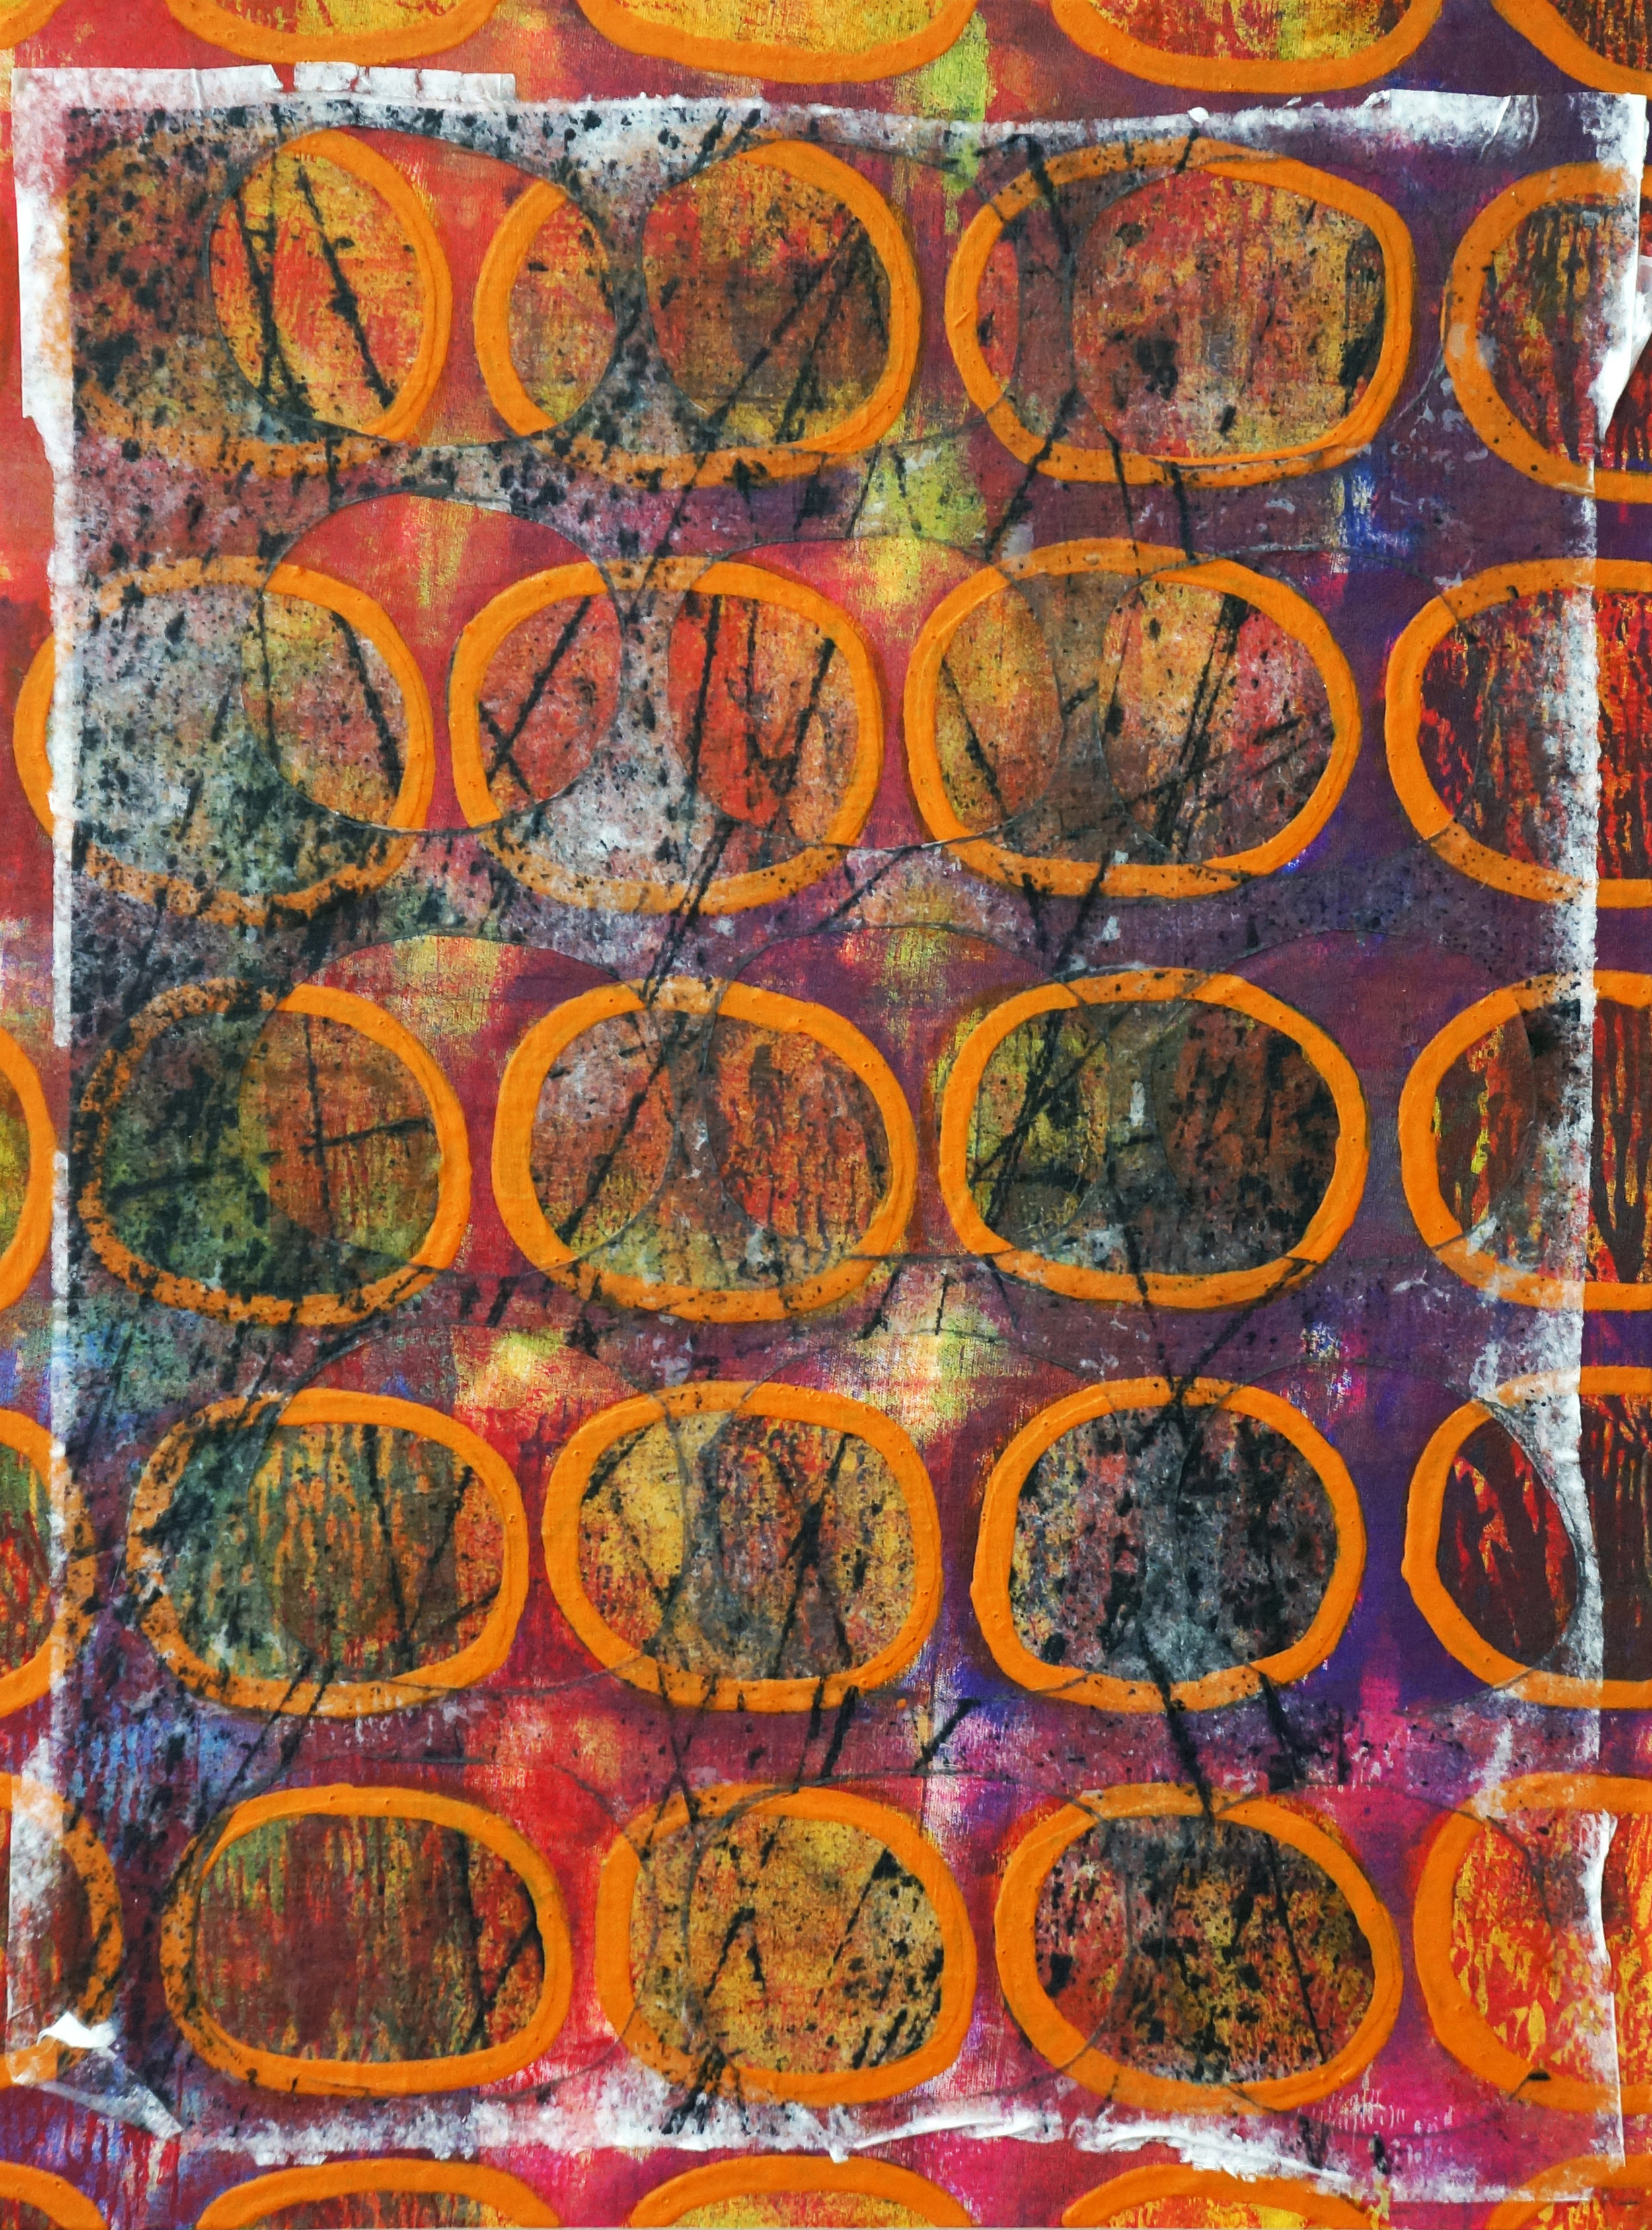 Jeanne Williamson, Bubbles and Cracks on Ice on Fences #11 , mixed media on cradled board, 14x14